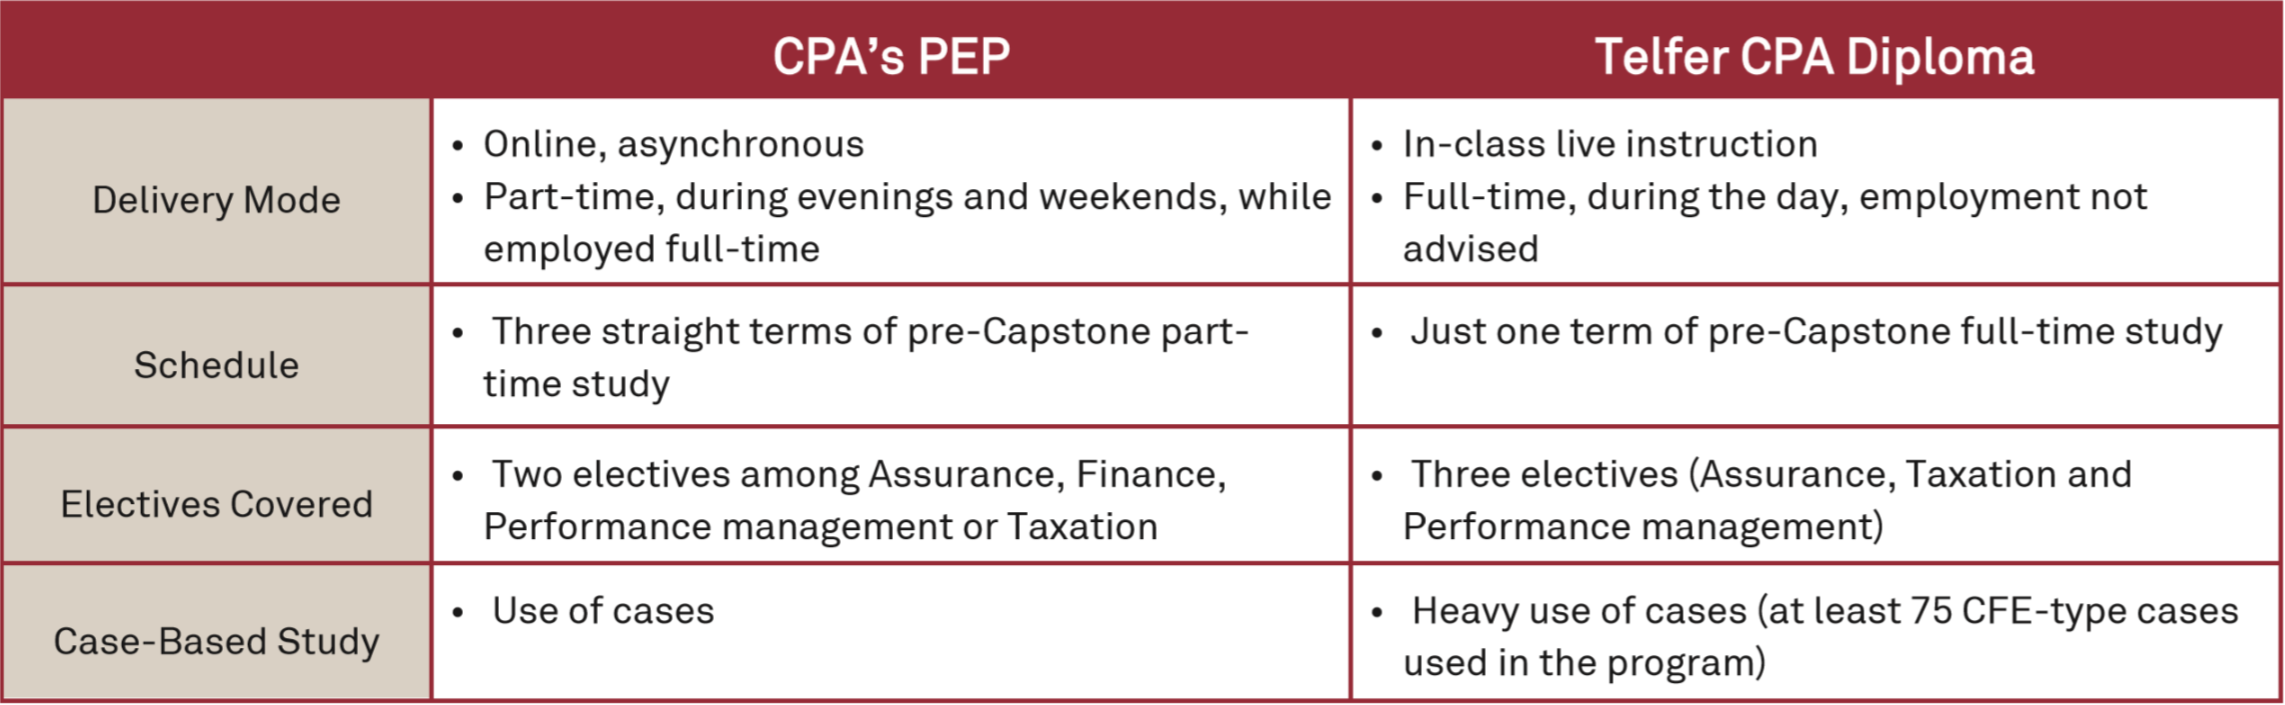 Graduate Diploma In Chartered Professional Accountancy Telfer